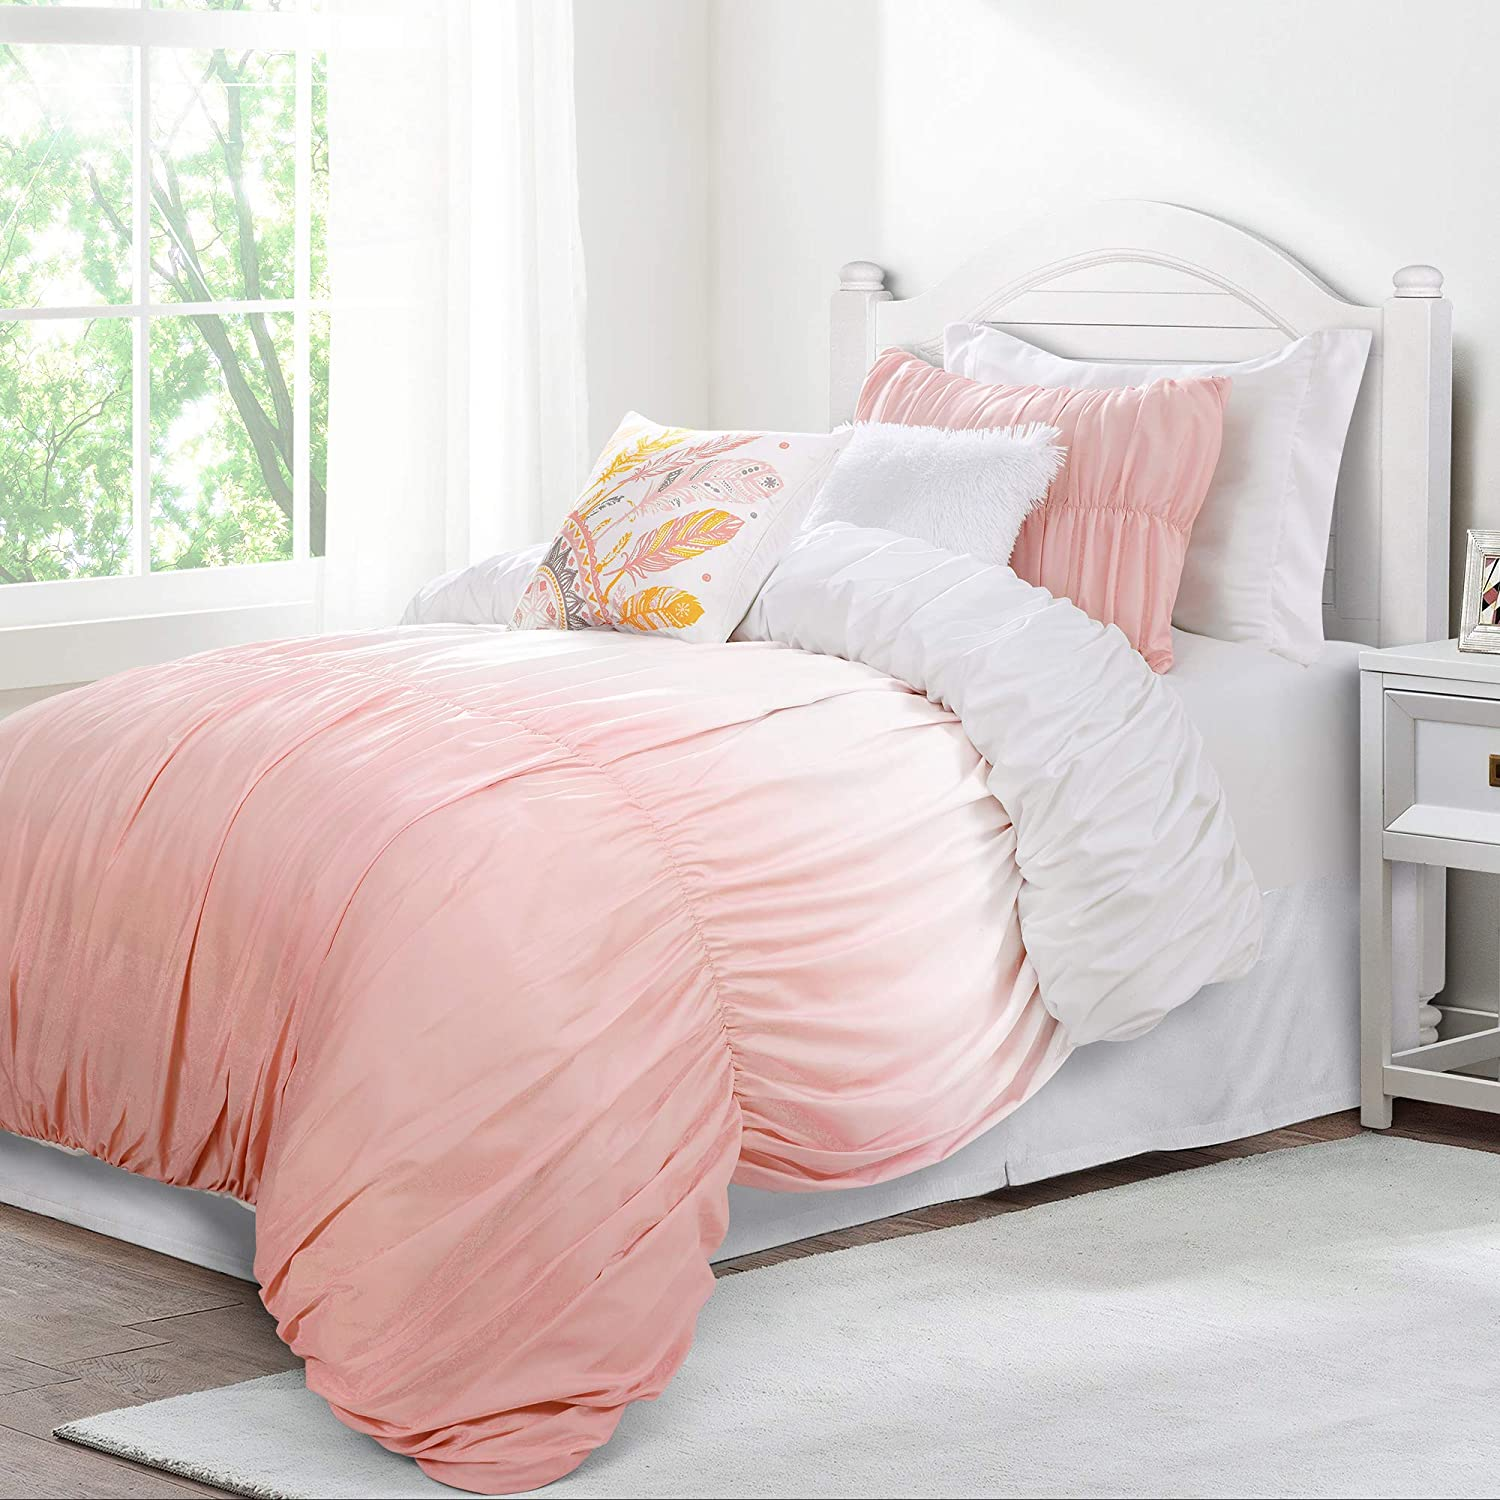 Lush Decor Umbre Fiesta 4 Piece Comforter Set, Twin-XL, Blush